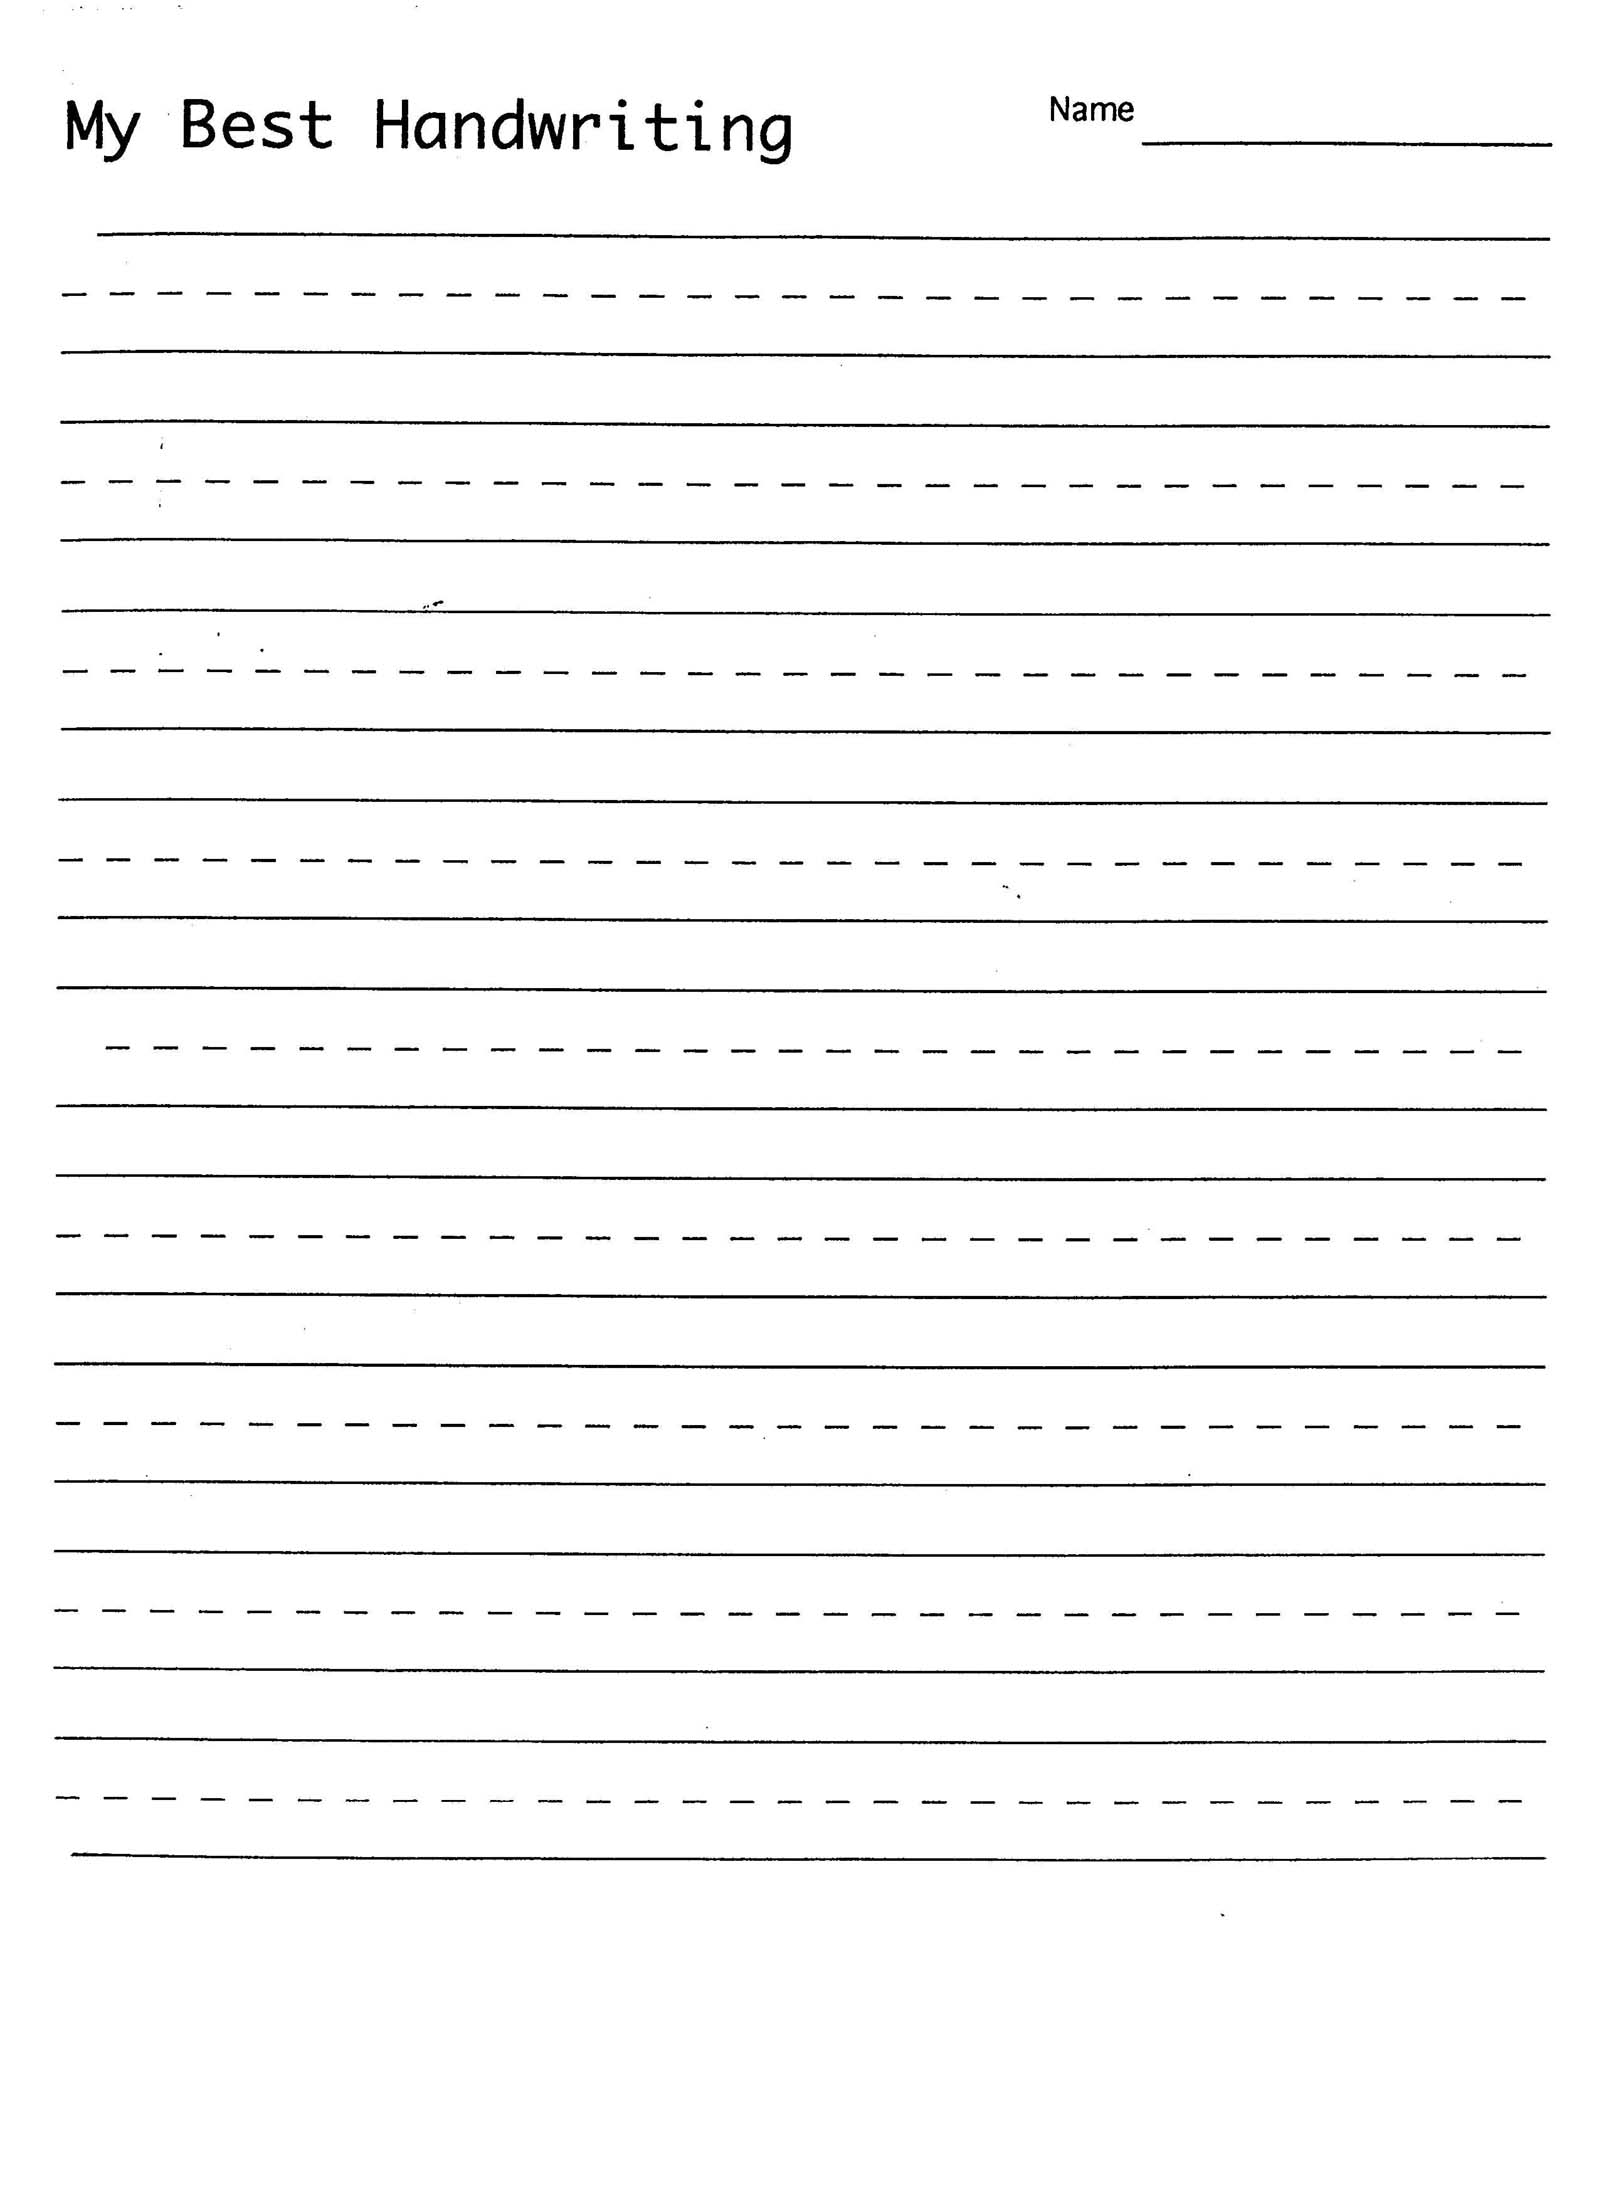 Worksheets Handwriting Practice Worksheets worksheet free handwriting practice wosenly printable laptuoso laptuoso